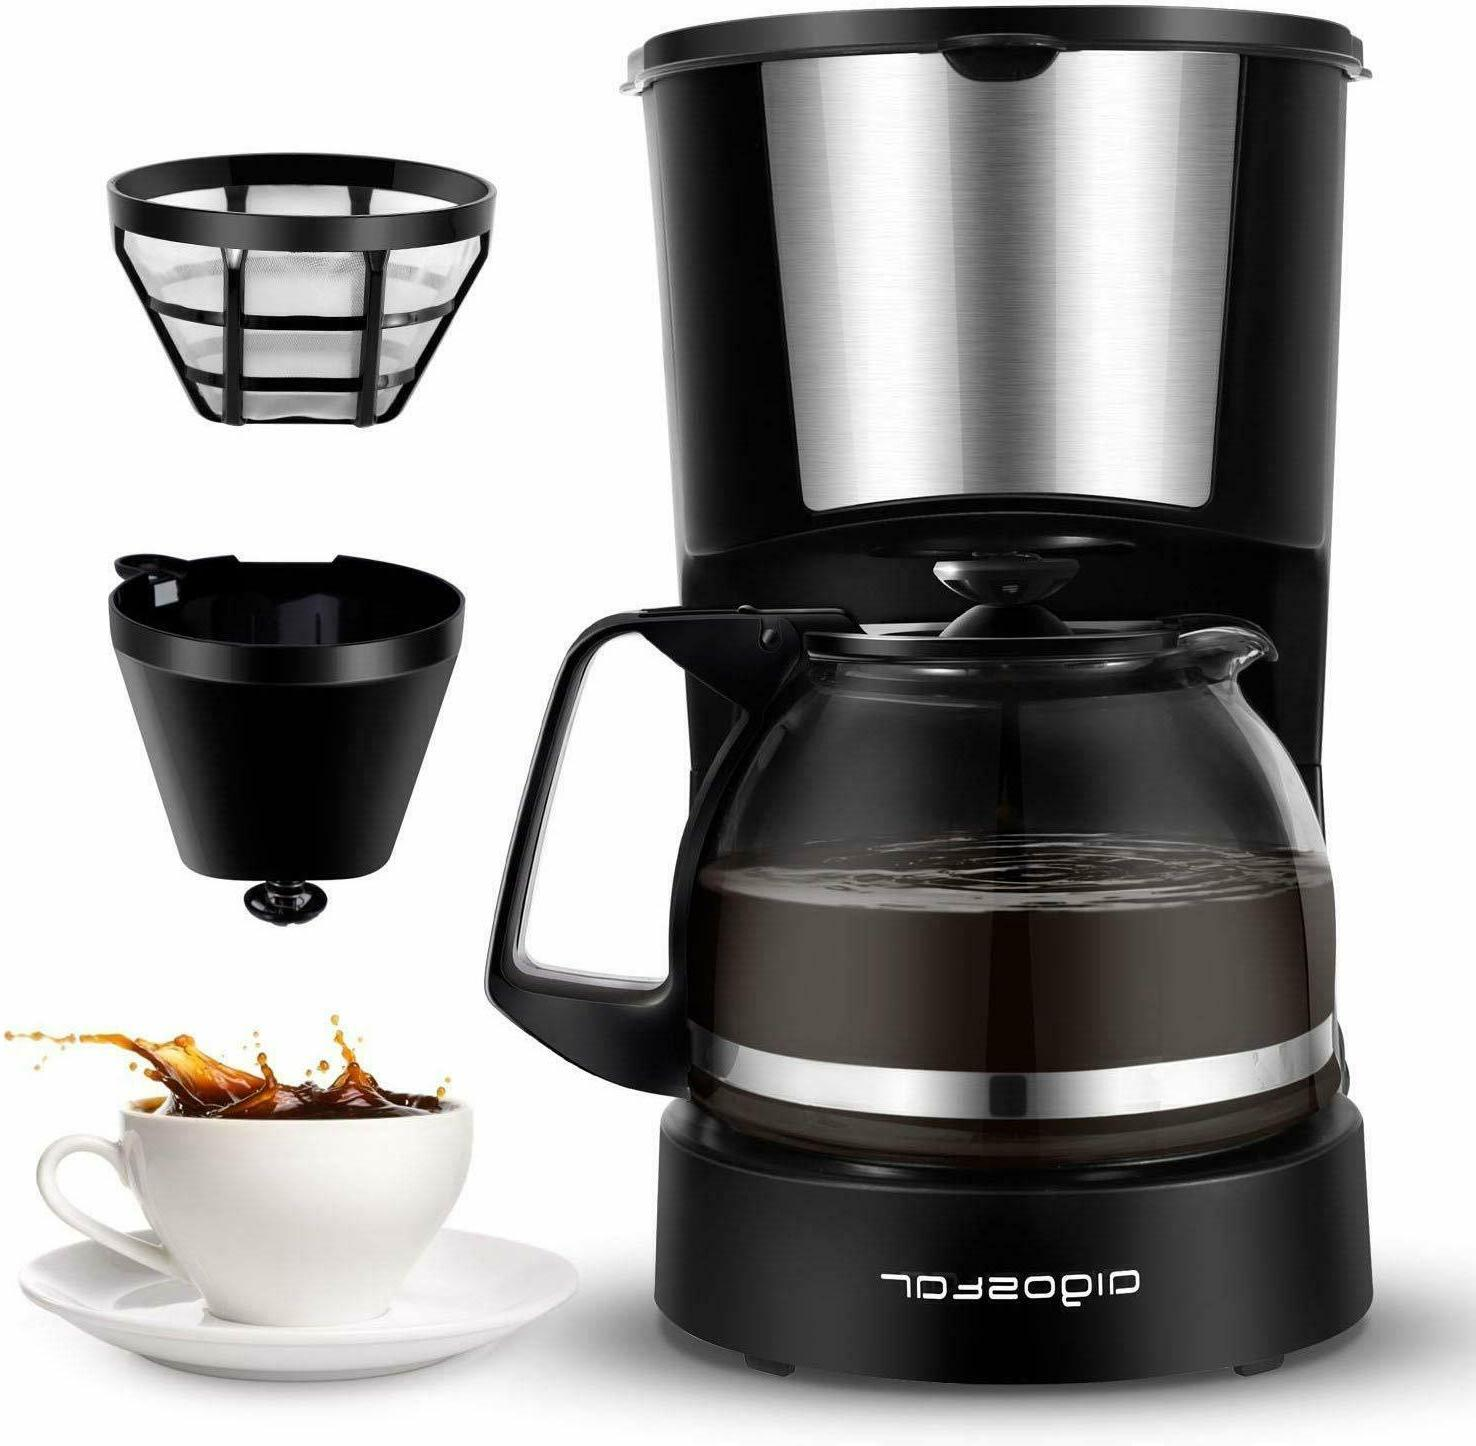 4 cup small coffee maker with coffee